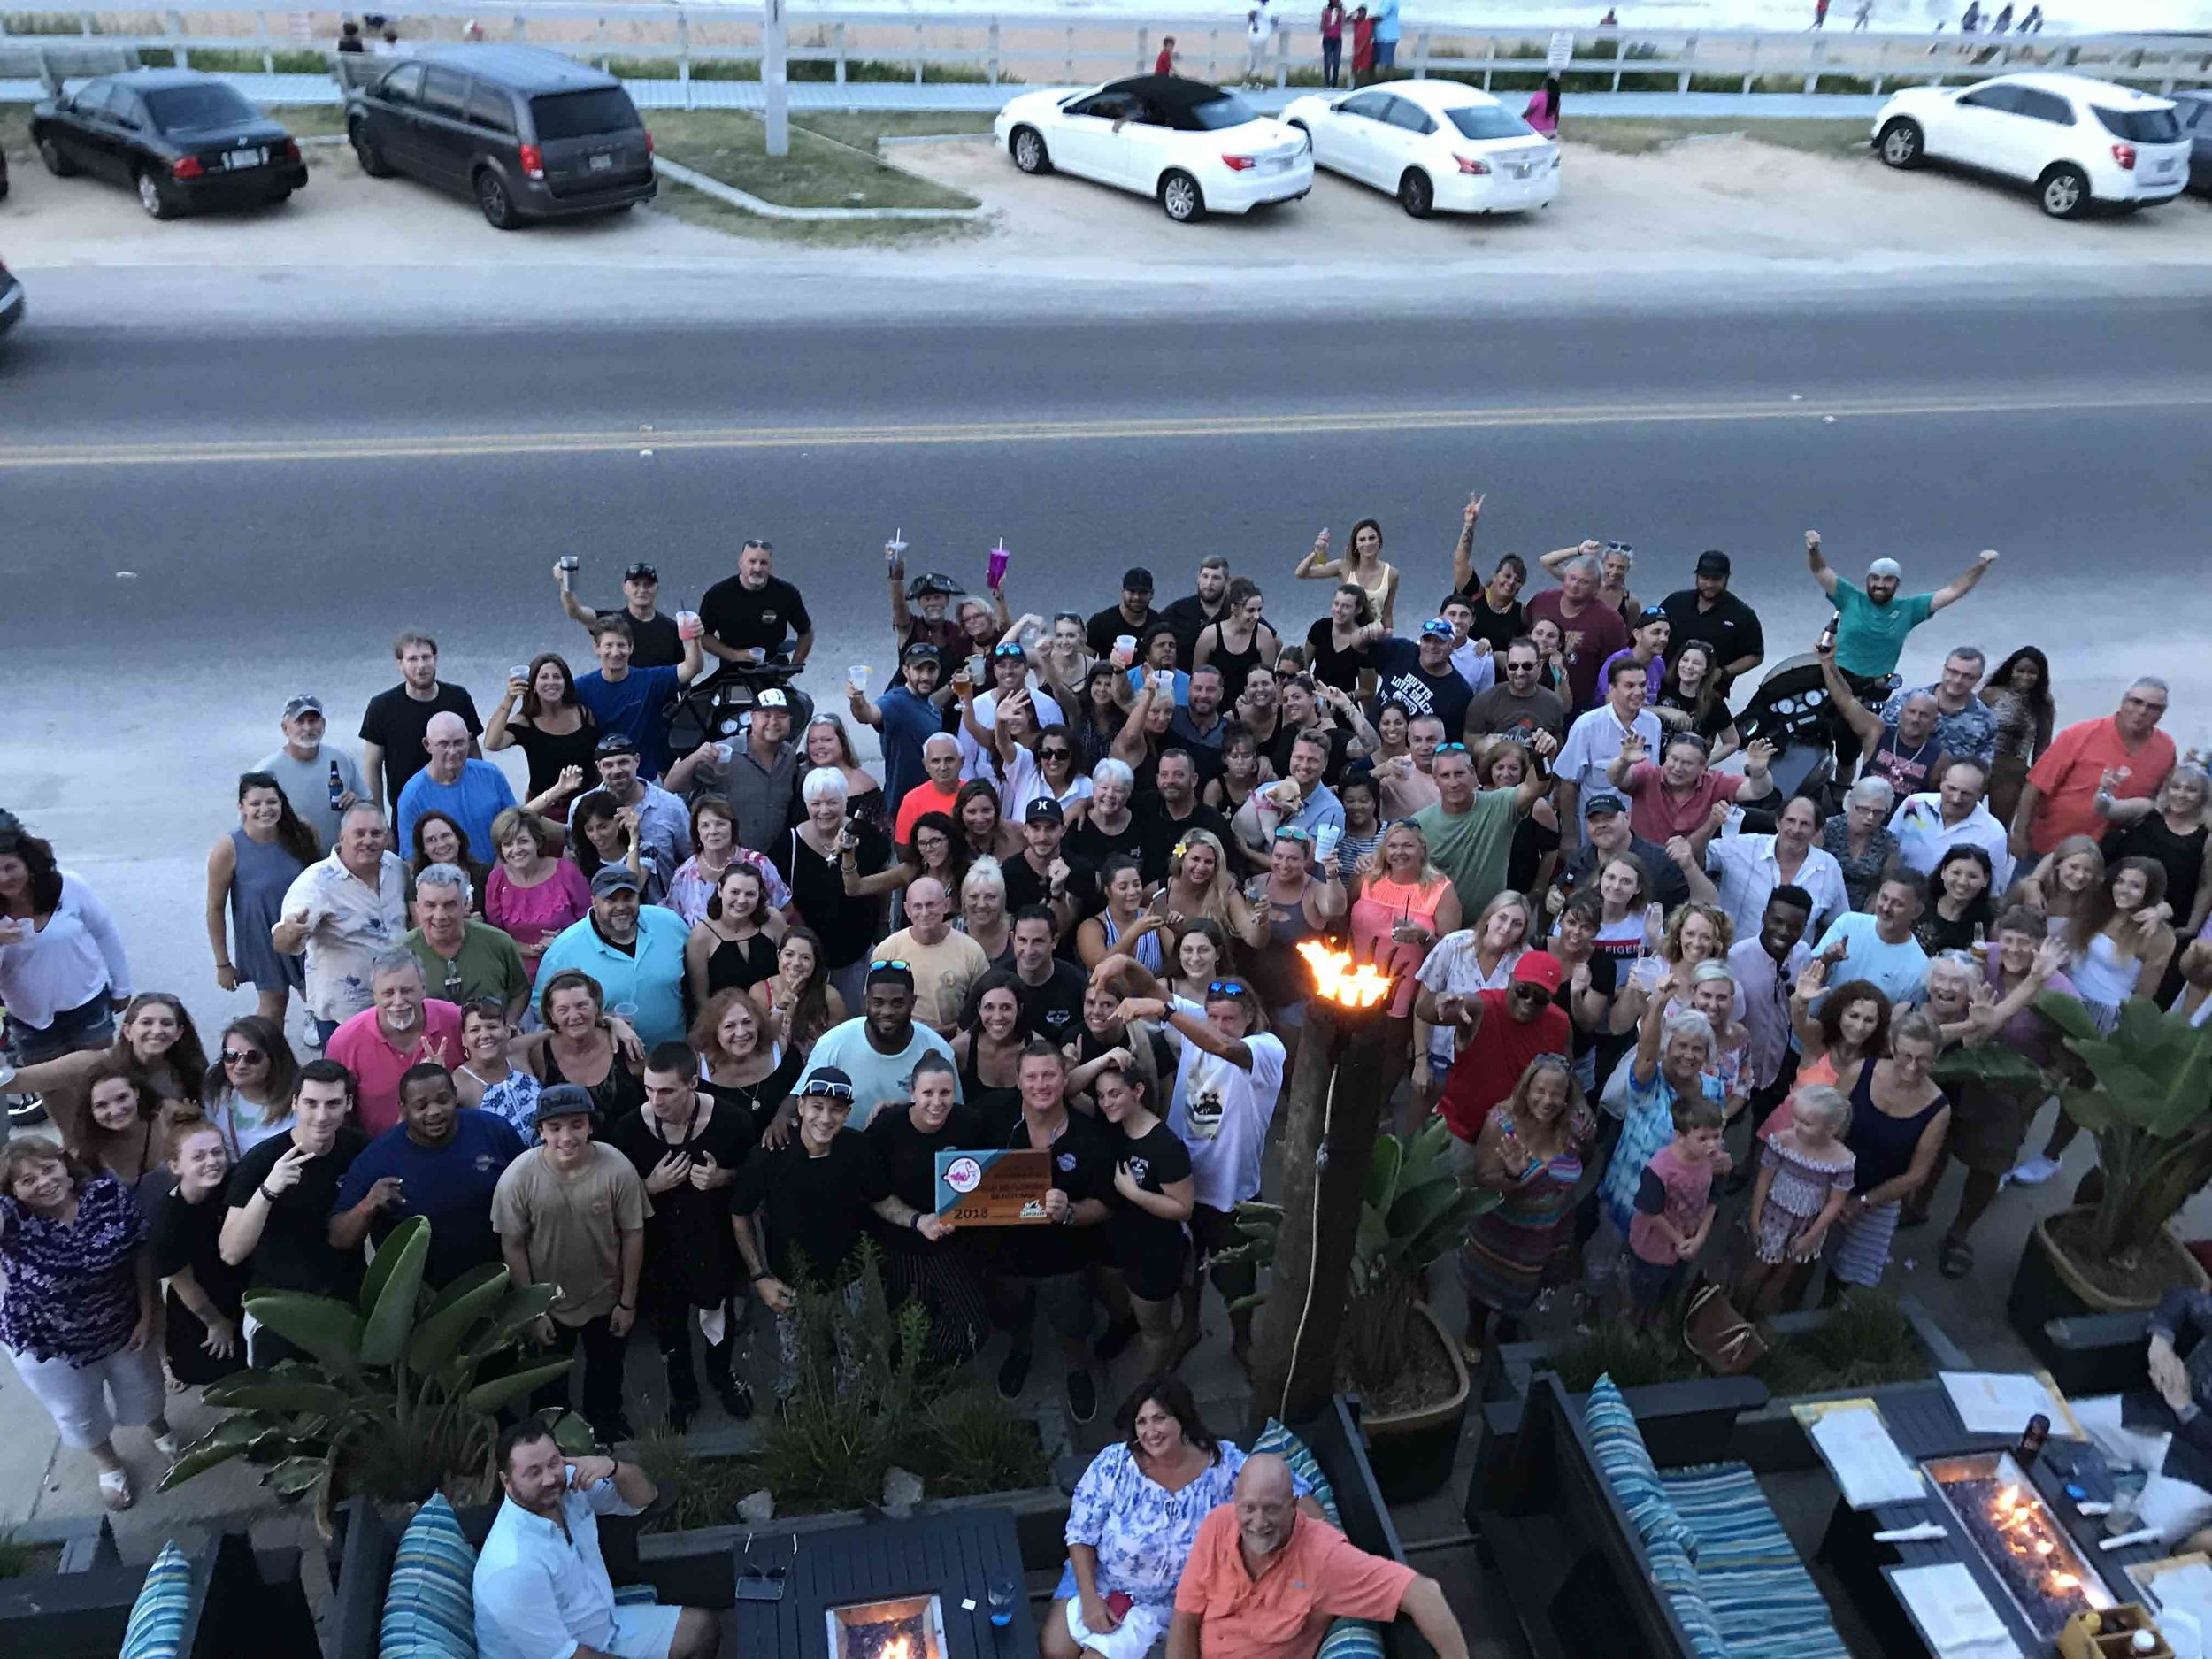 Tortugas Kitchen and Bar Accepts A 2018 Top 10 Florida Beach Bar Award Sponsored by LandShark lager